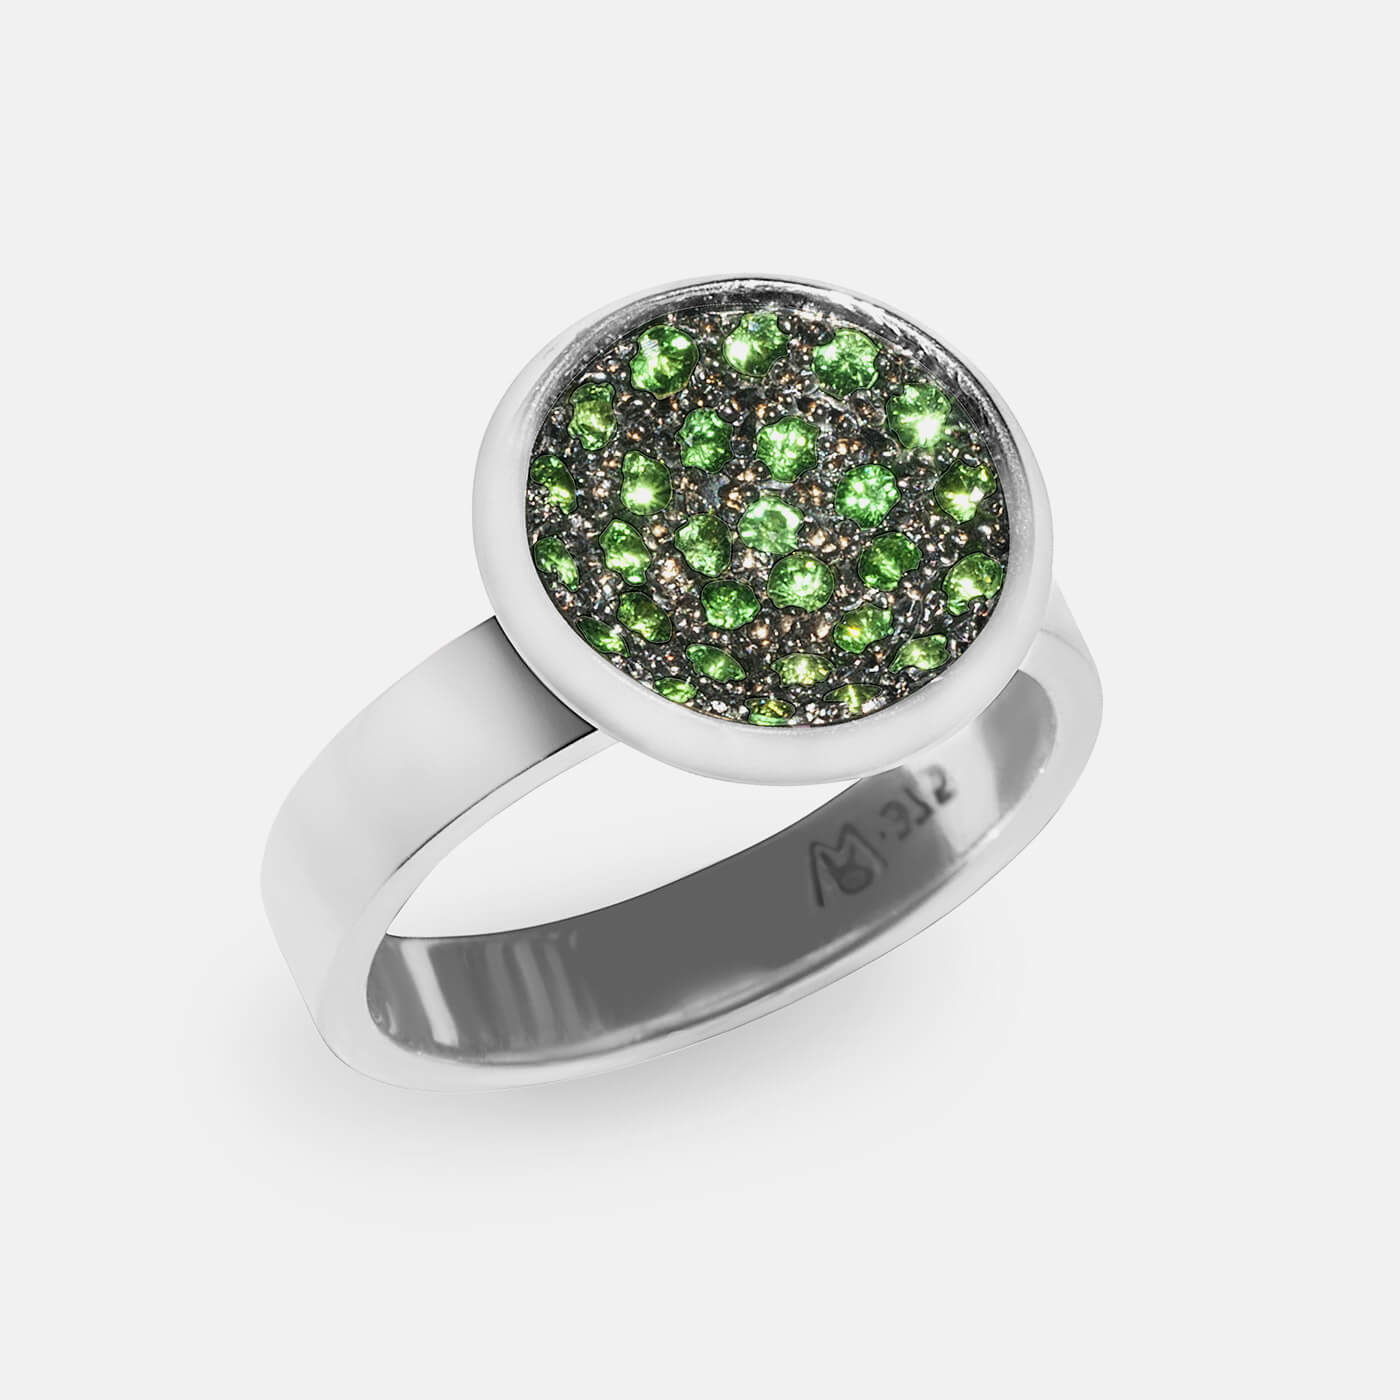 Dreaming in Green Engagement Ring